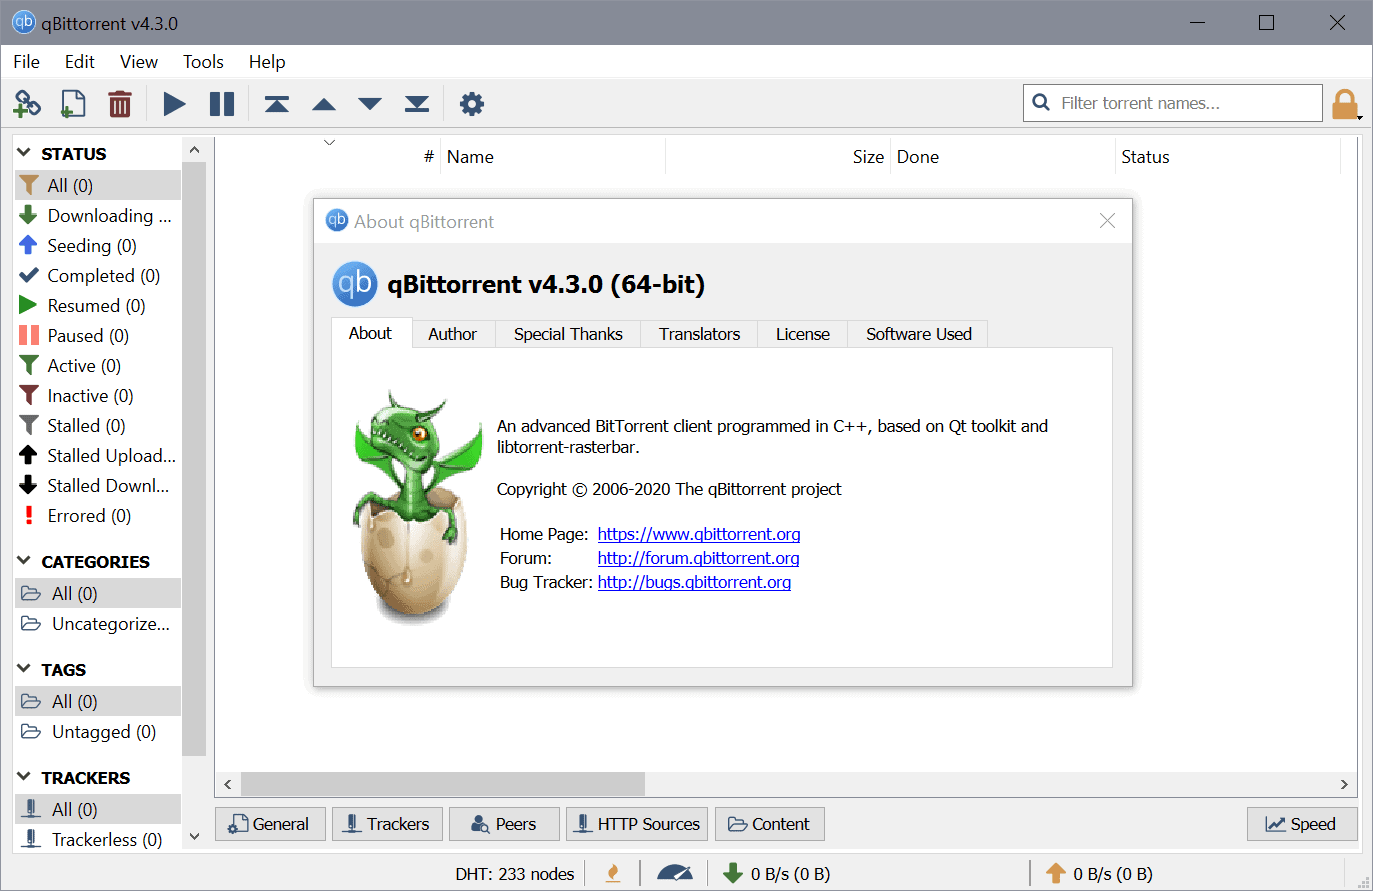 qBittorrent 4.3.0 is a major update with important changes